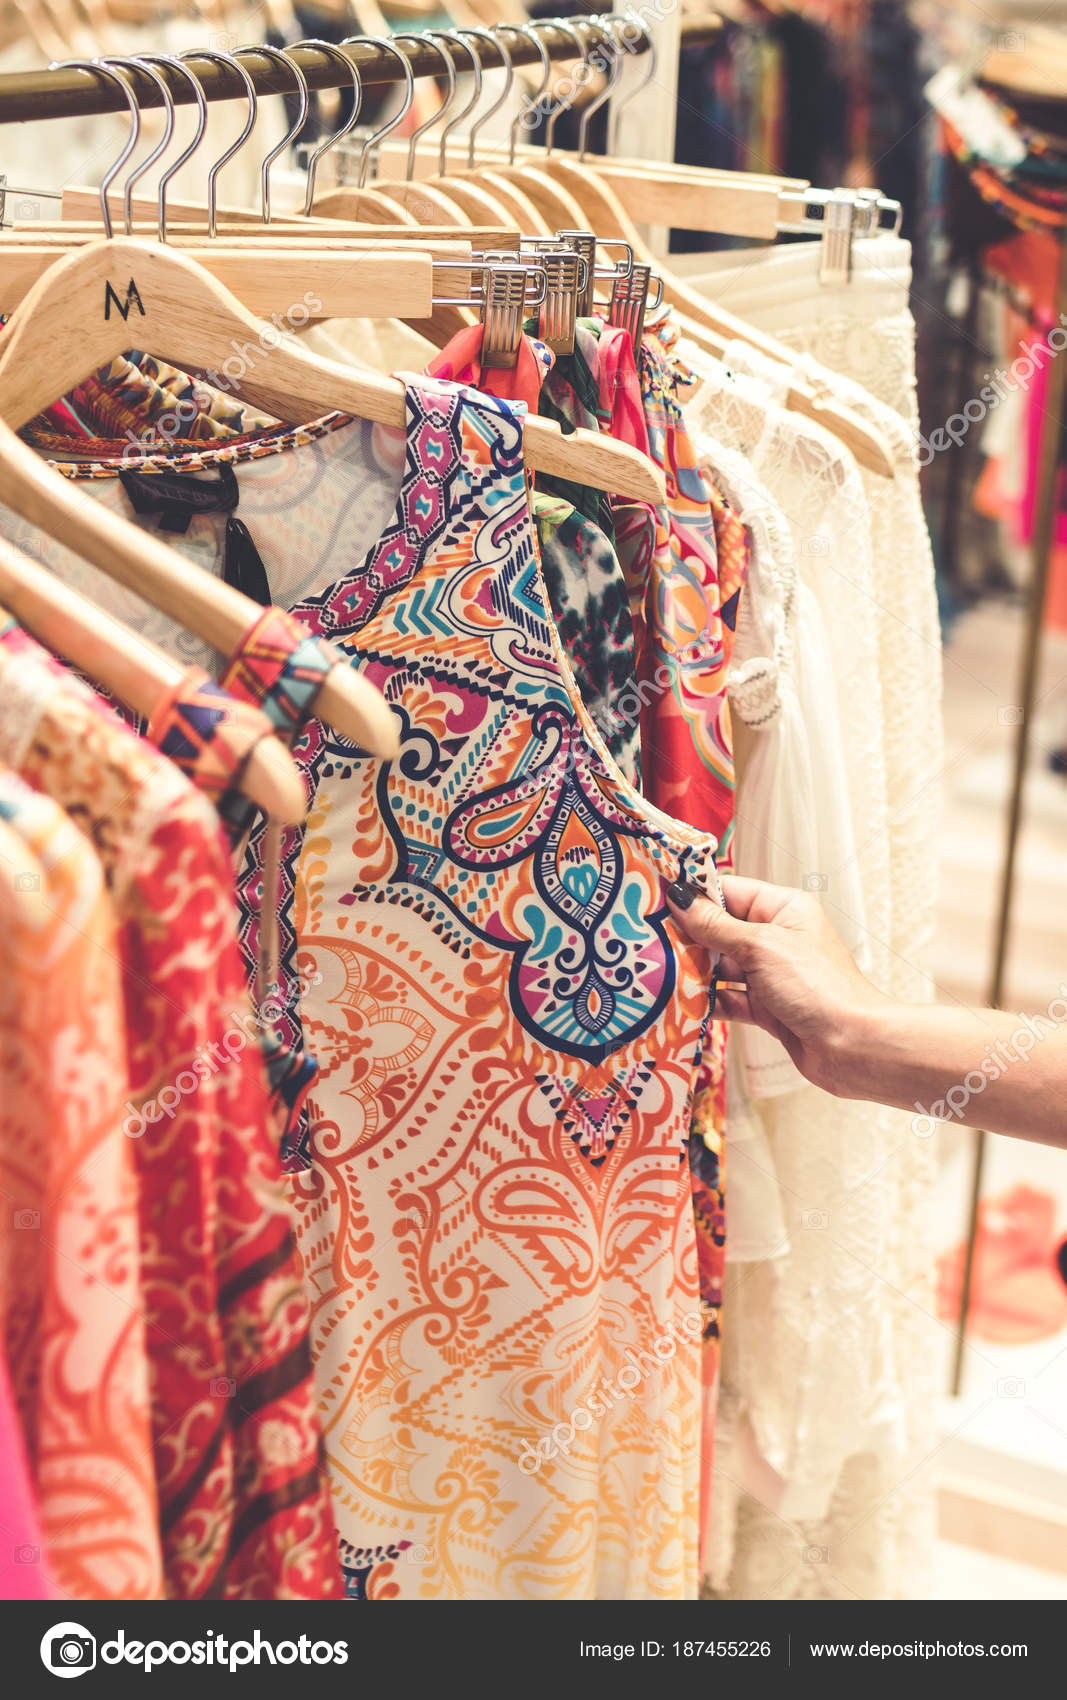 Women Clothing Store On Bali Island Indonesia Shopping Concept